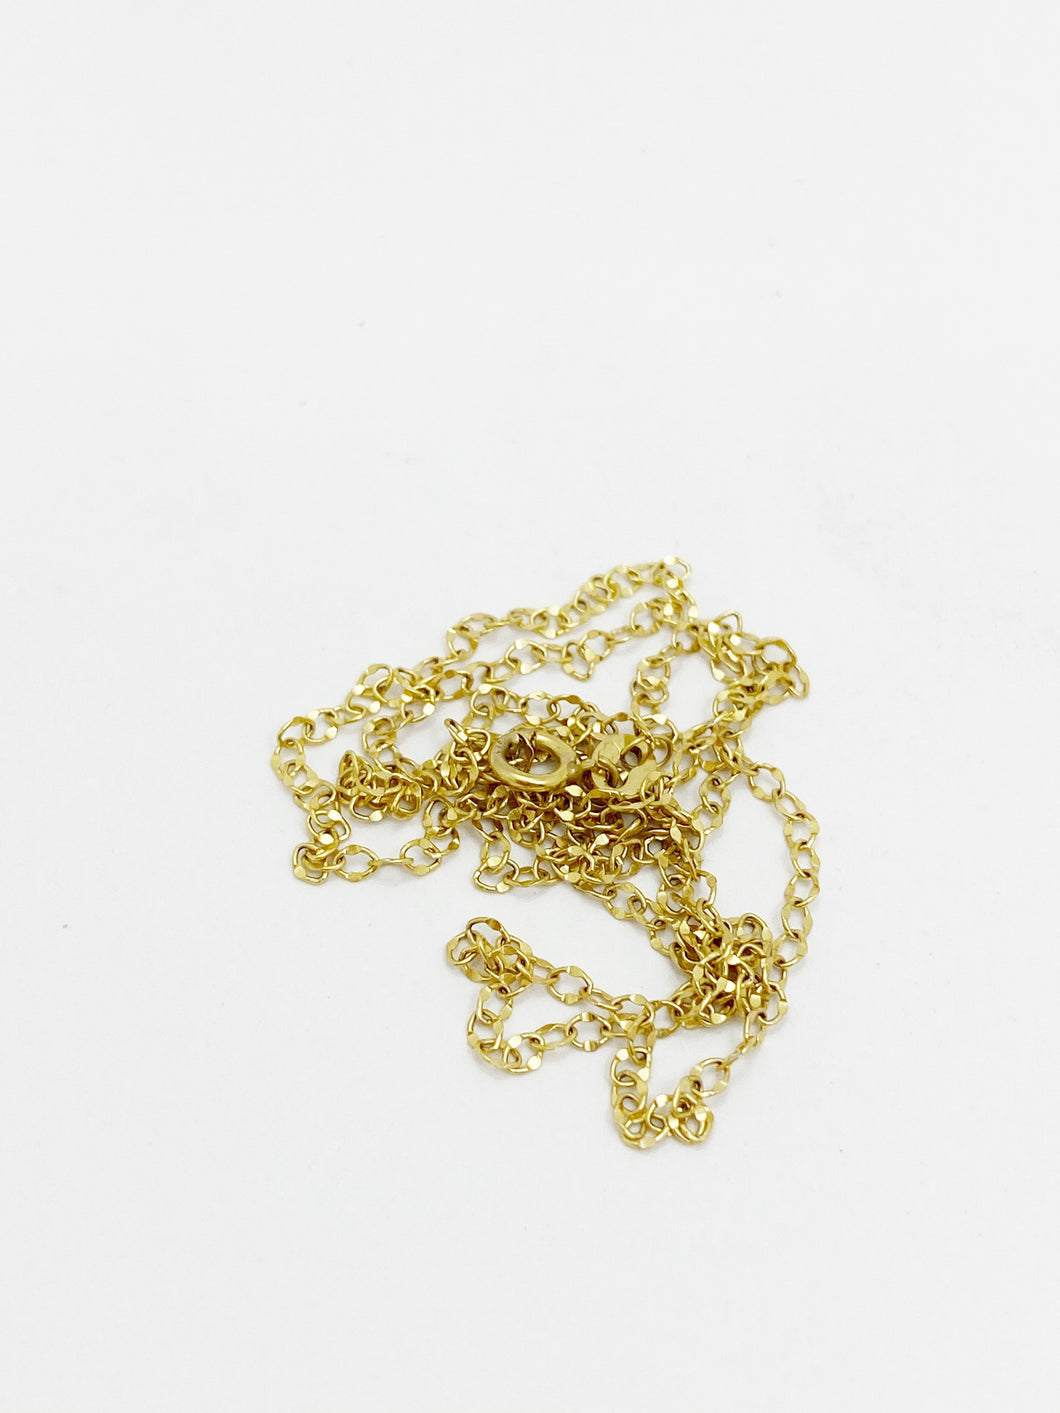 9ct Yellow Gold Hammered Cable Chain, 45cm Long